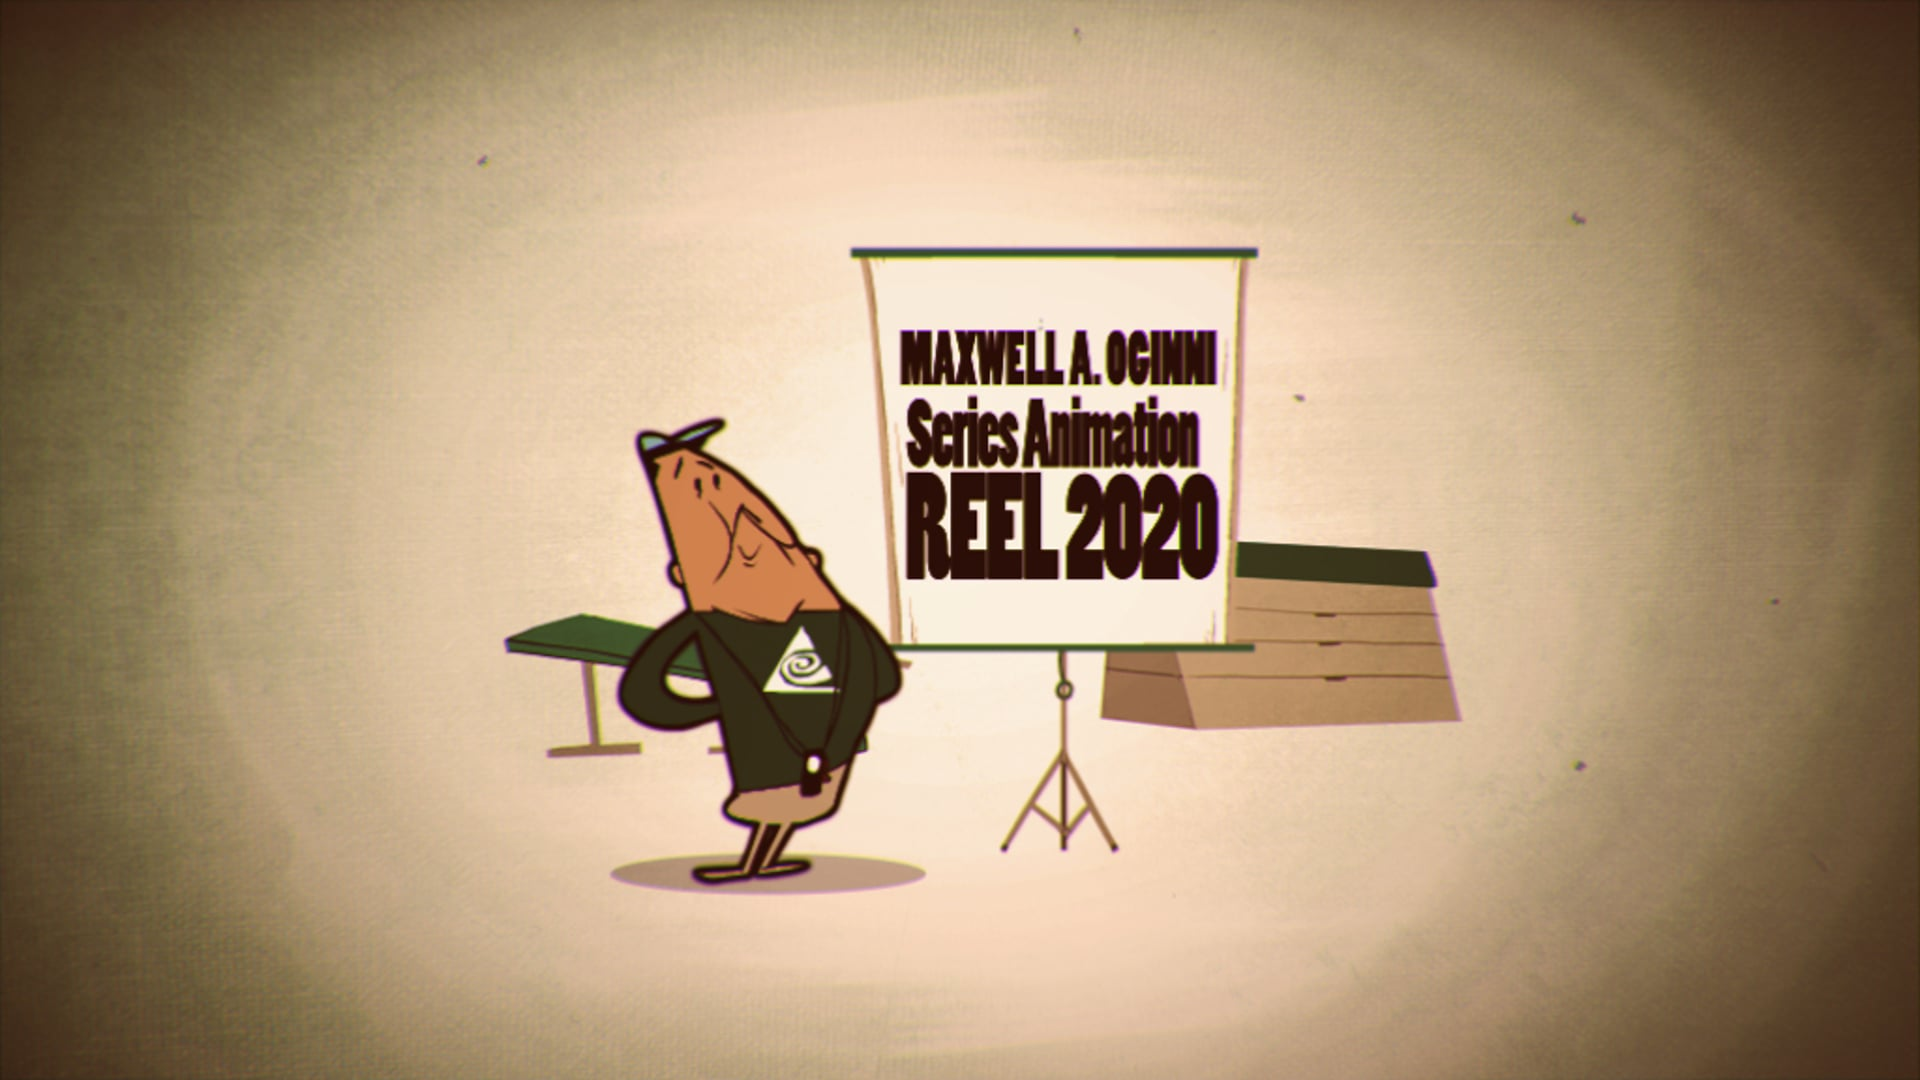 MAXWELL A. OGINNI CEL-ACTION REEL 2020